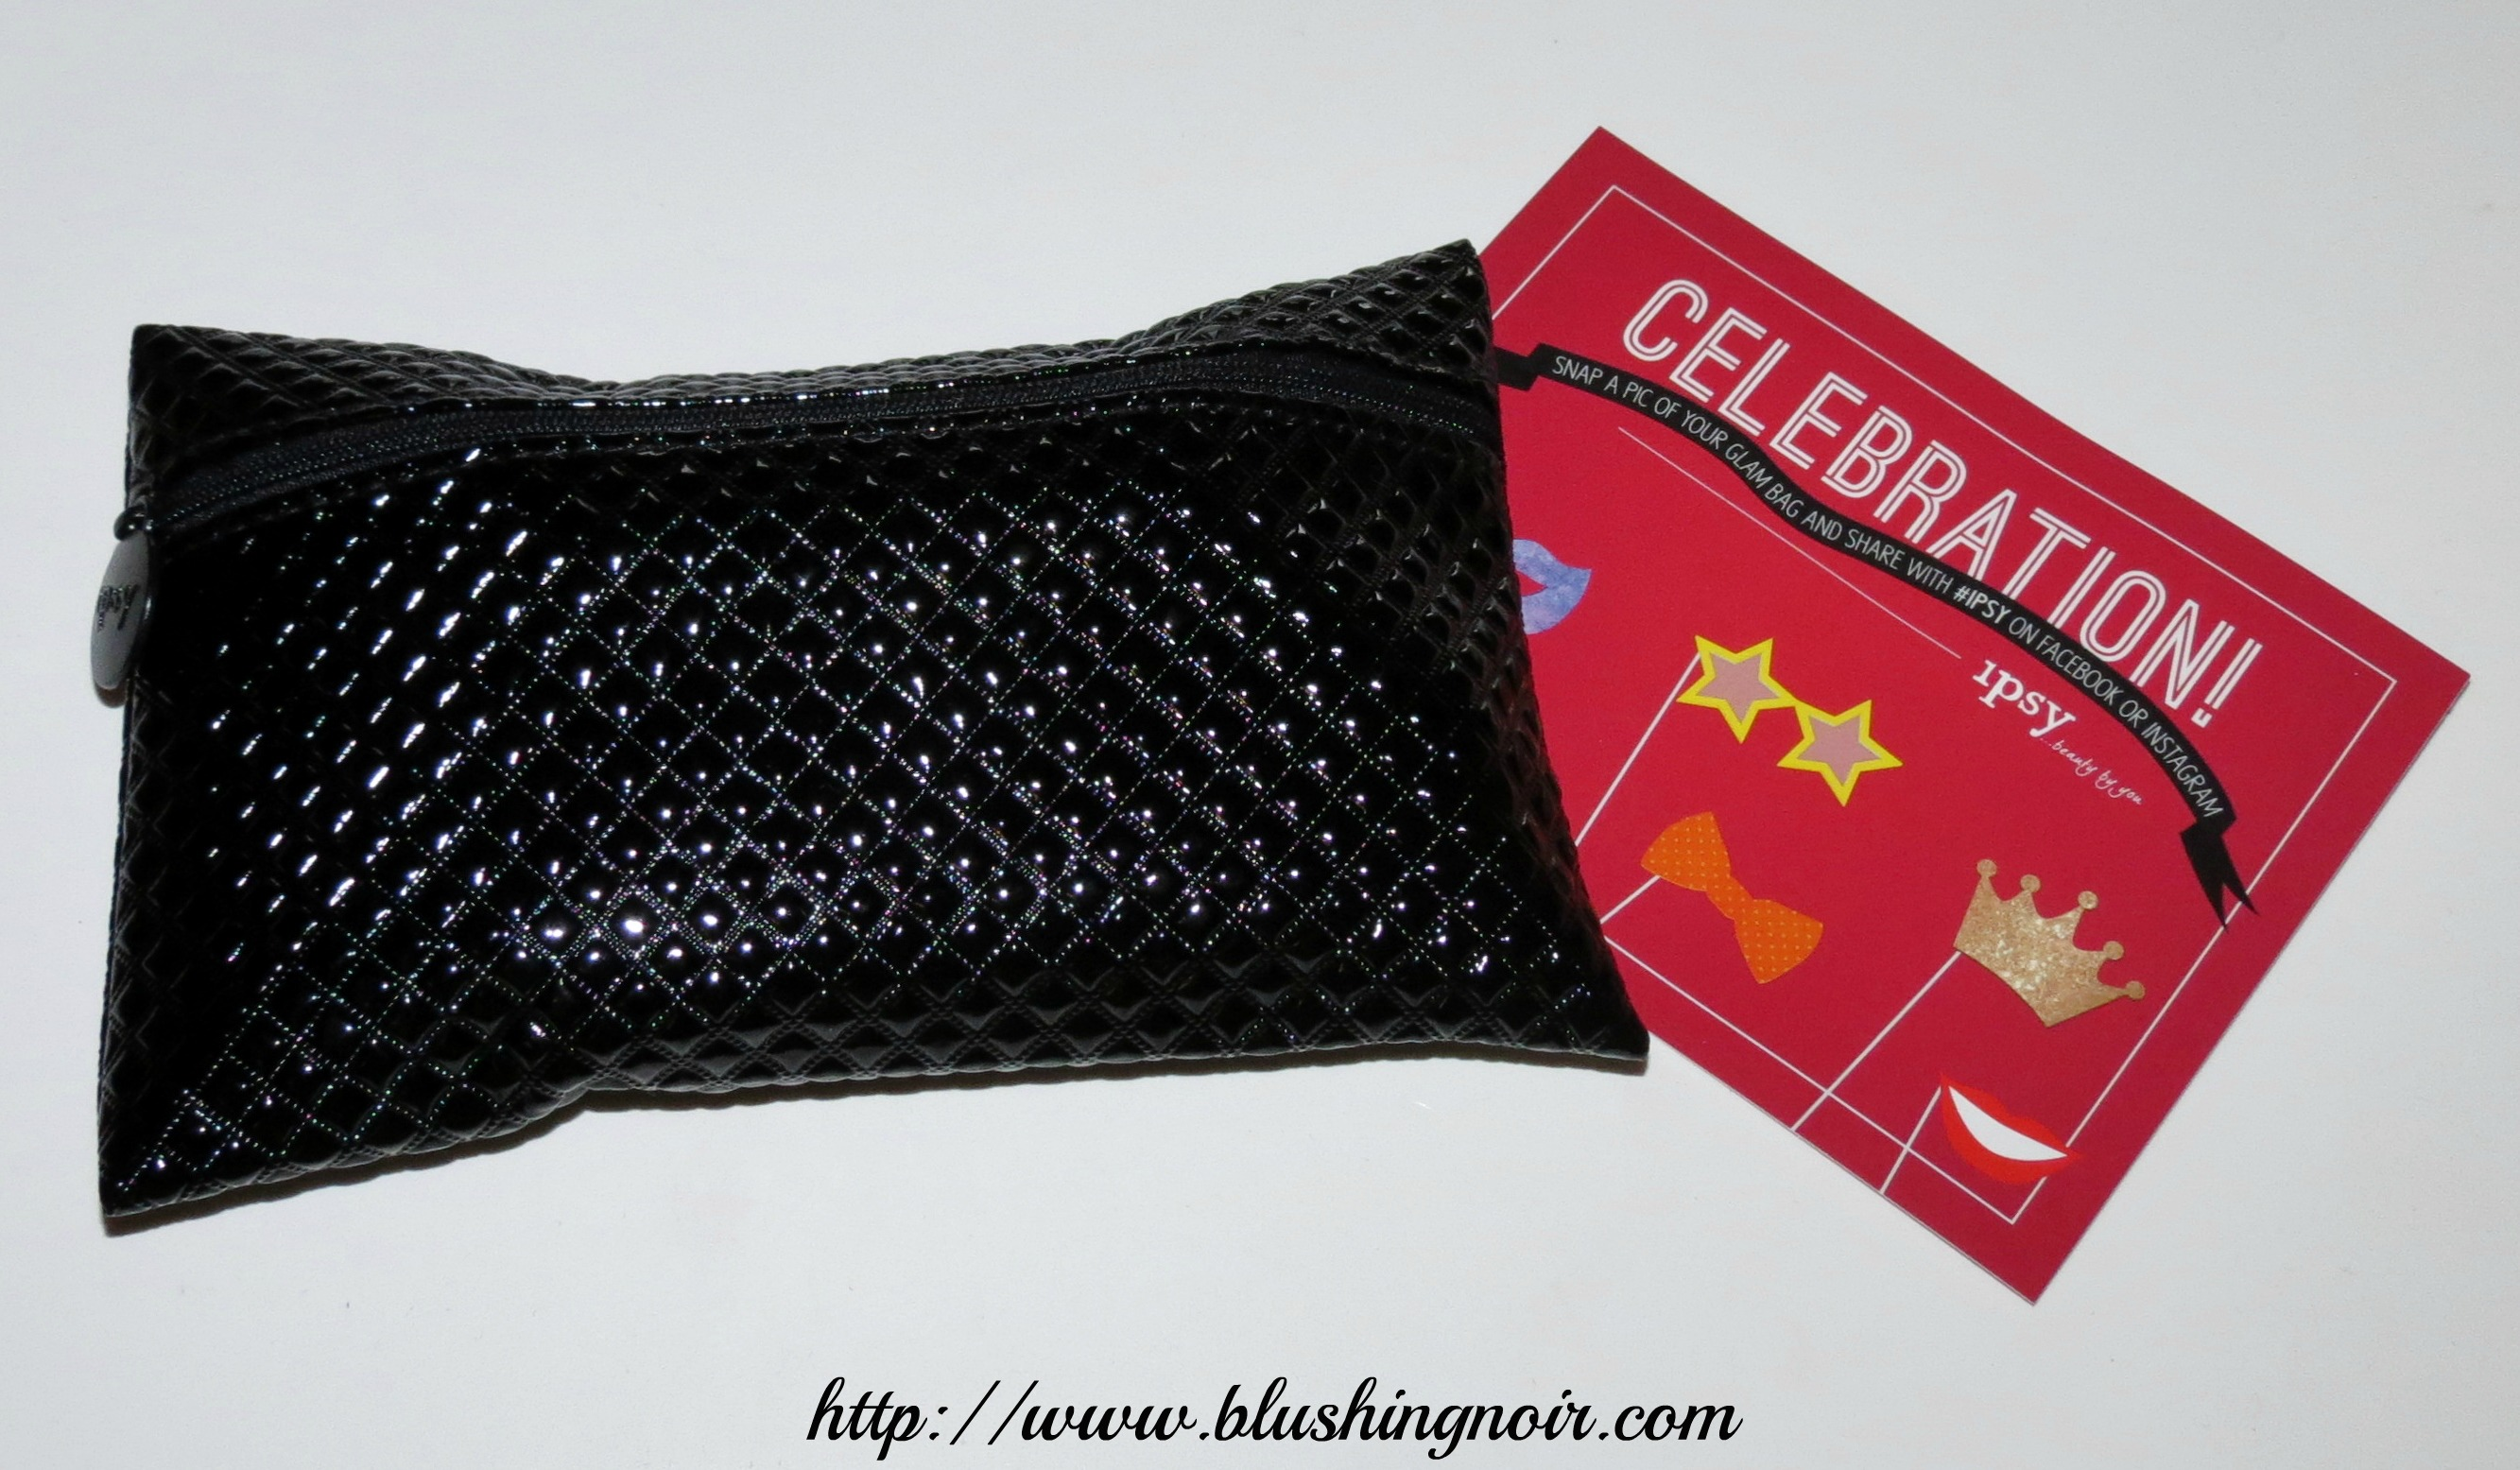 December 2013 ipsy Glam Bag Review & Swatches - Blushing Noir